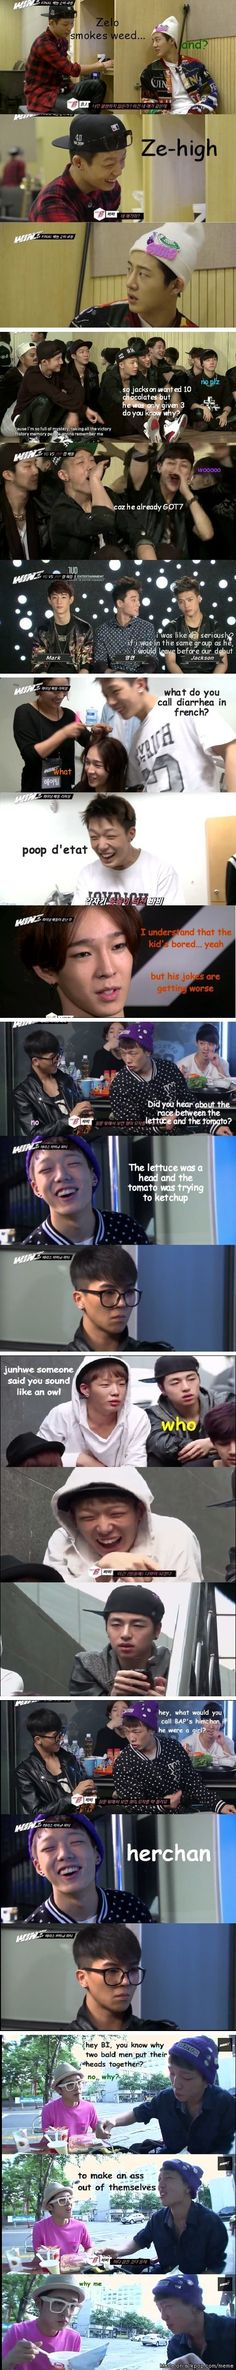 Meme Center | allkpop - Bad Jokes Bobby